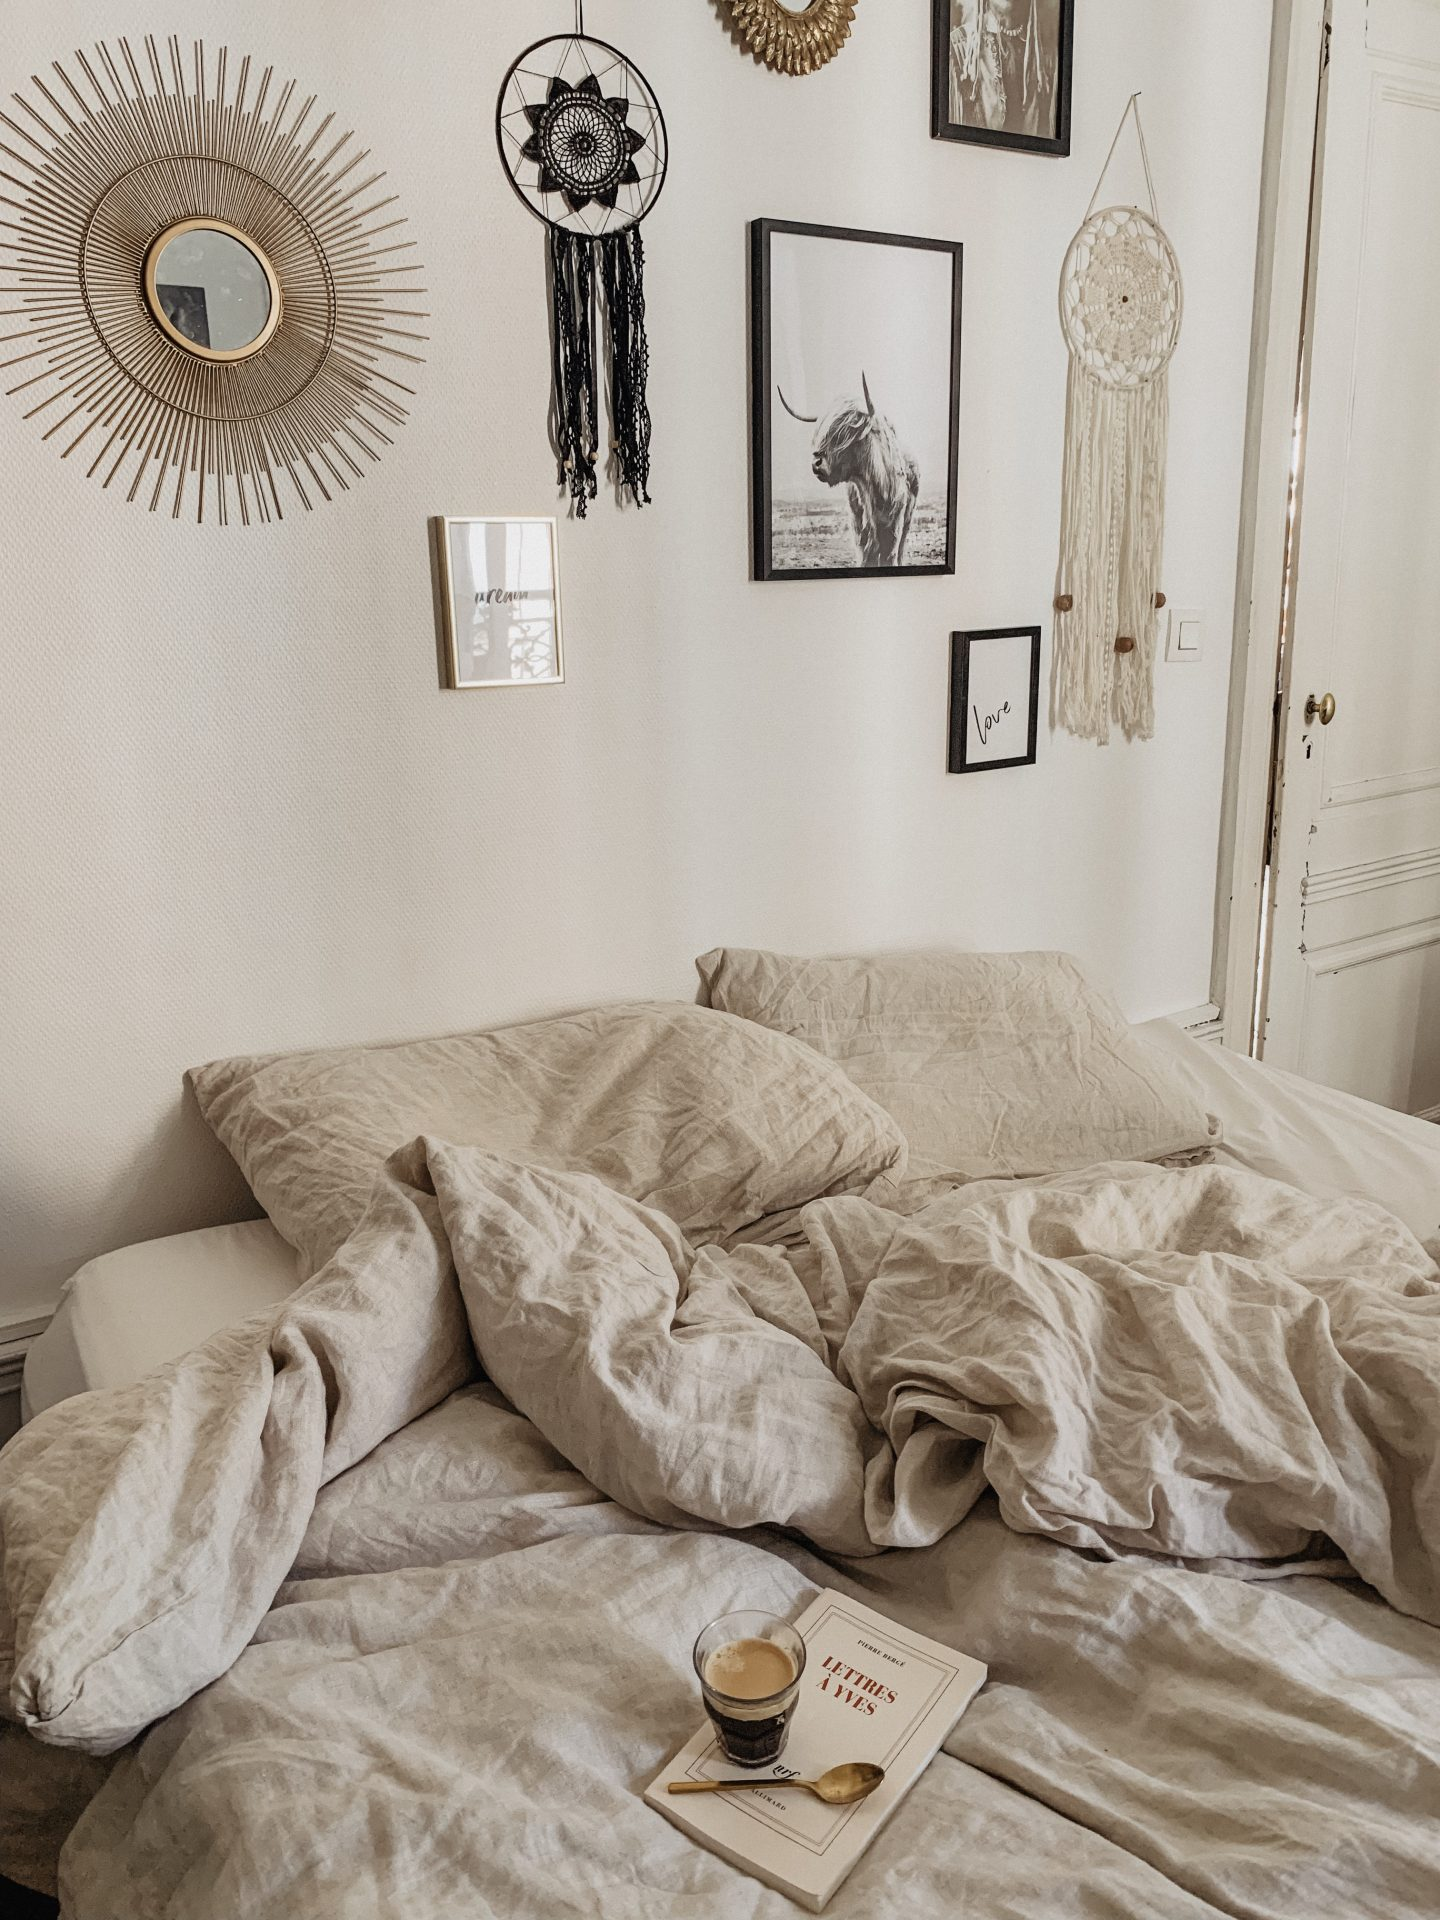 Inspiration décoration chambre - Marie and Mood - Blog mode ...